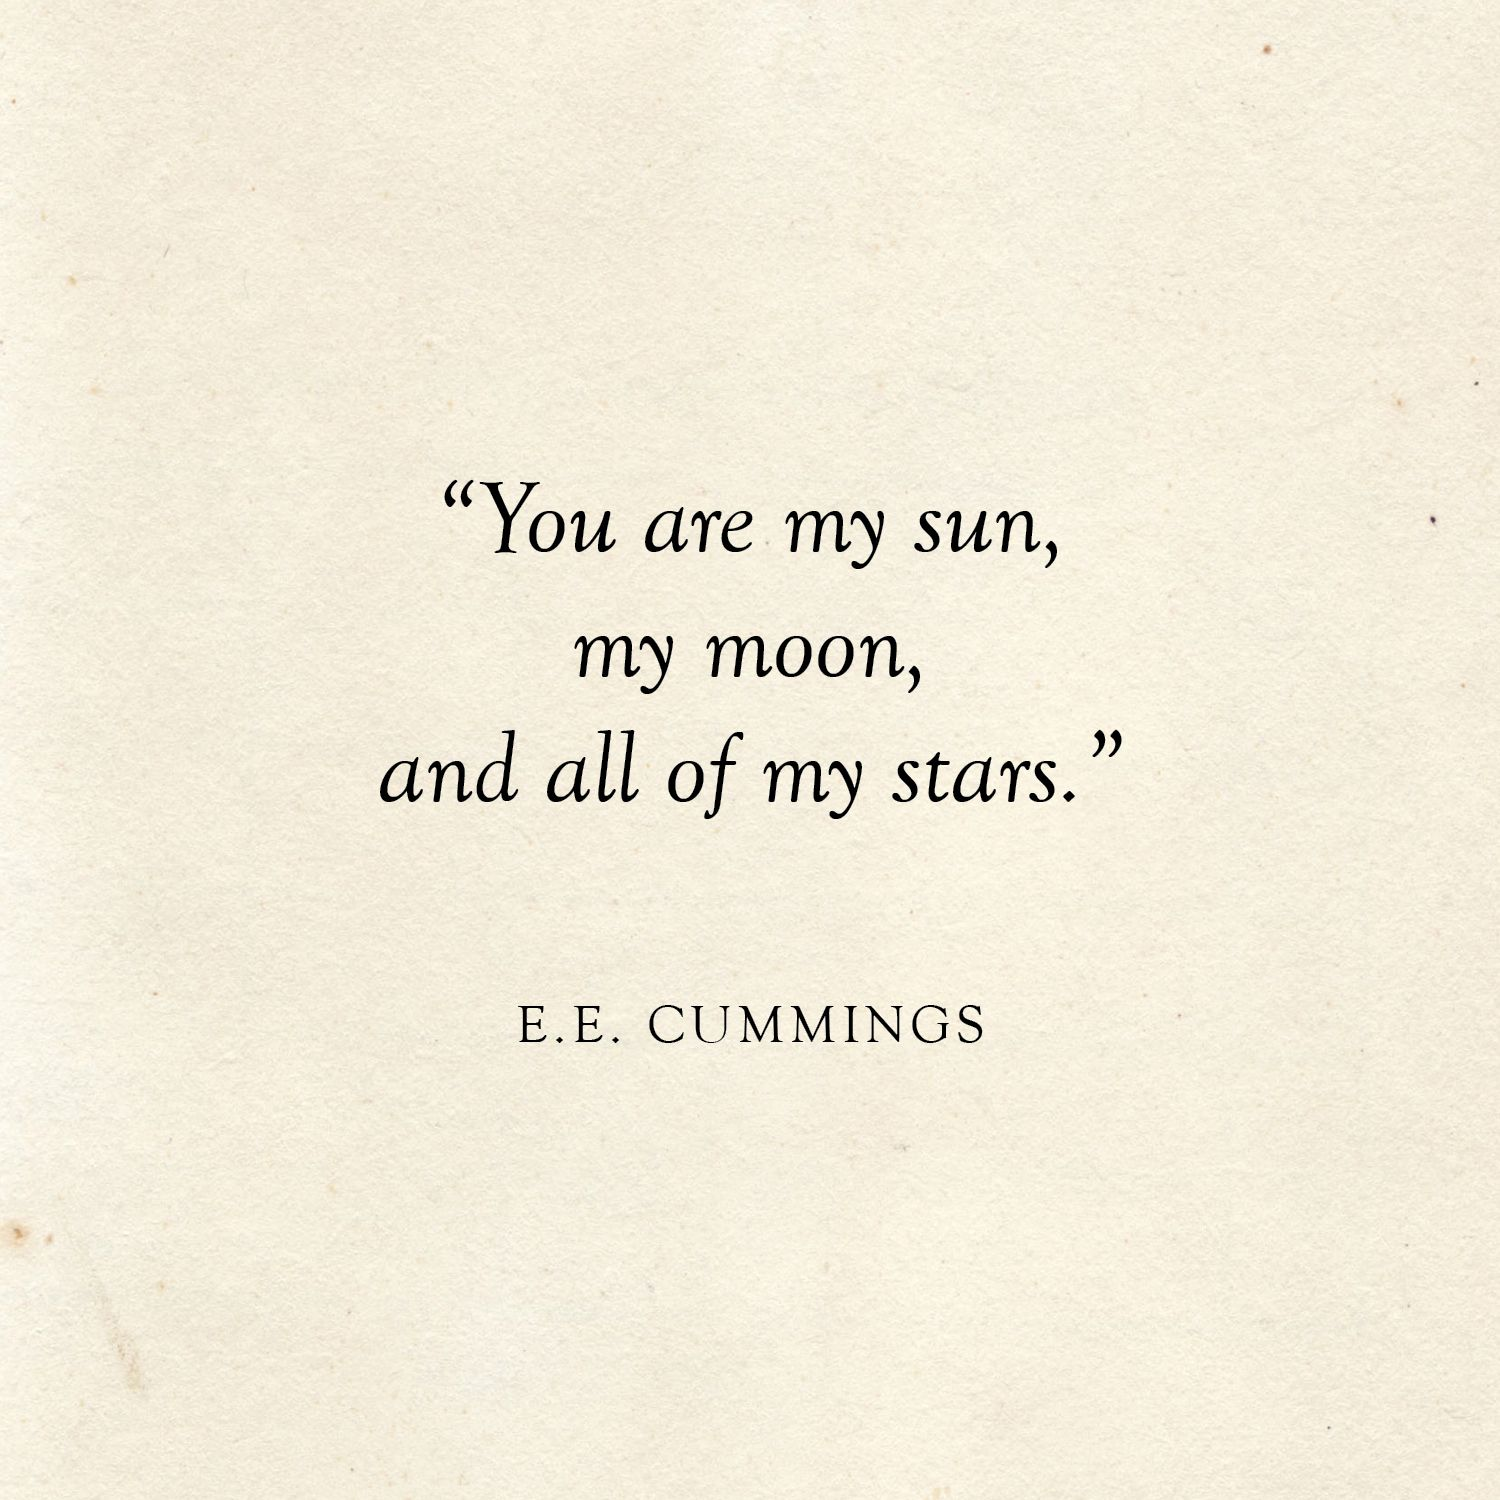 New Funny Facts 25 Literary Love Quotes | Posted Fete You are my sun, my moon and all of my stars | E.E. Cummings Quote | Literary Wedding | Love Quotes 2